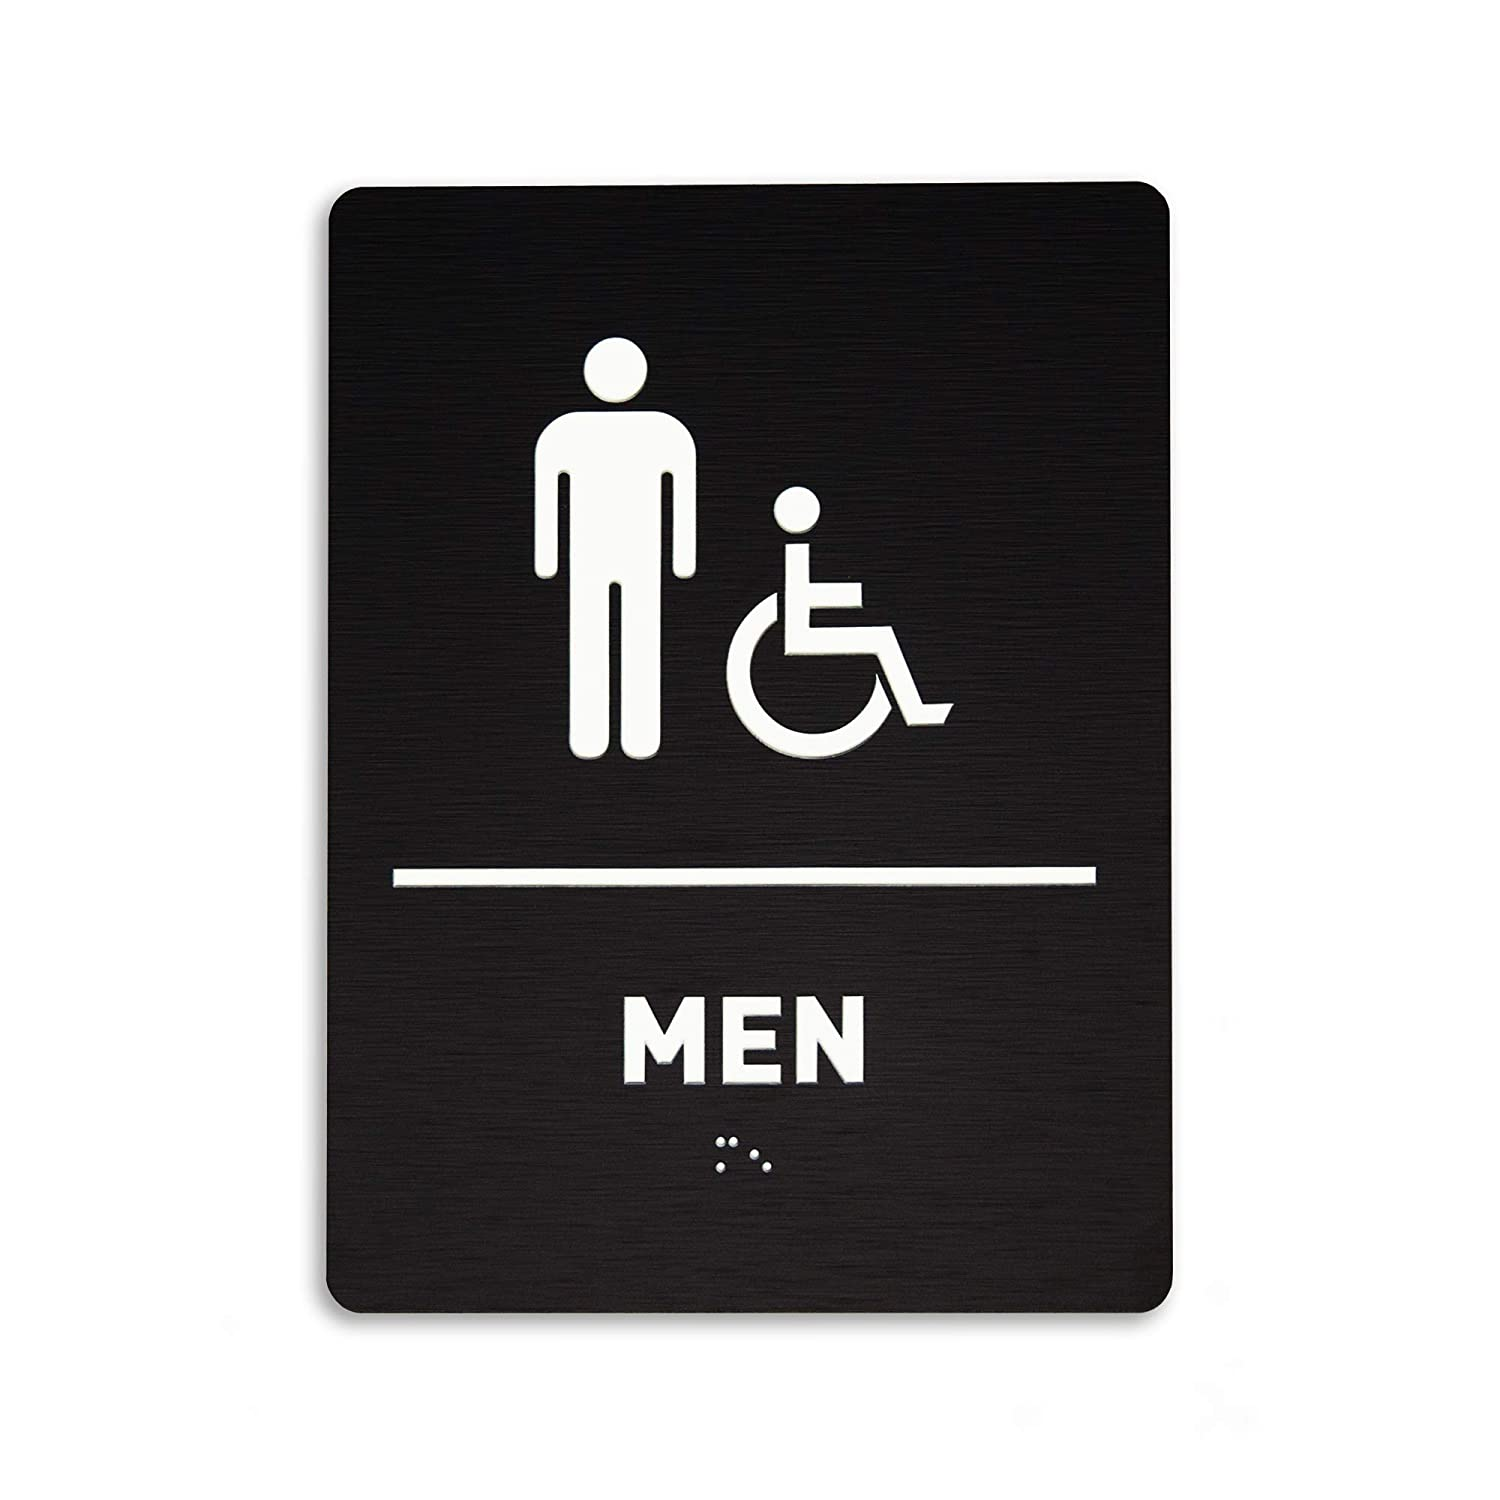 Men Restroom Identification Max 46% OFF Sign - Co Wheelchair Import ADA Accessible